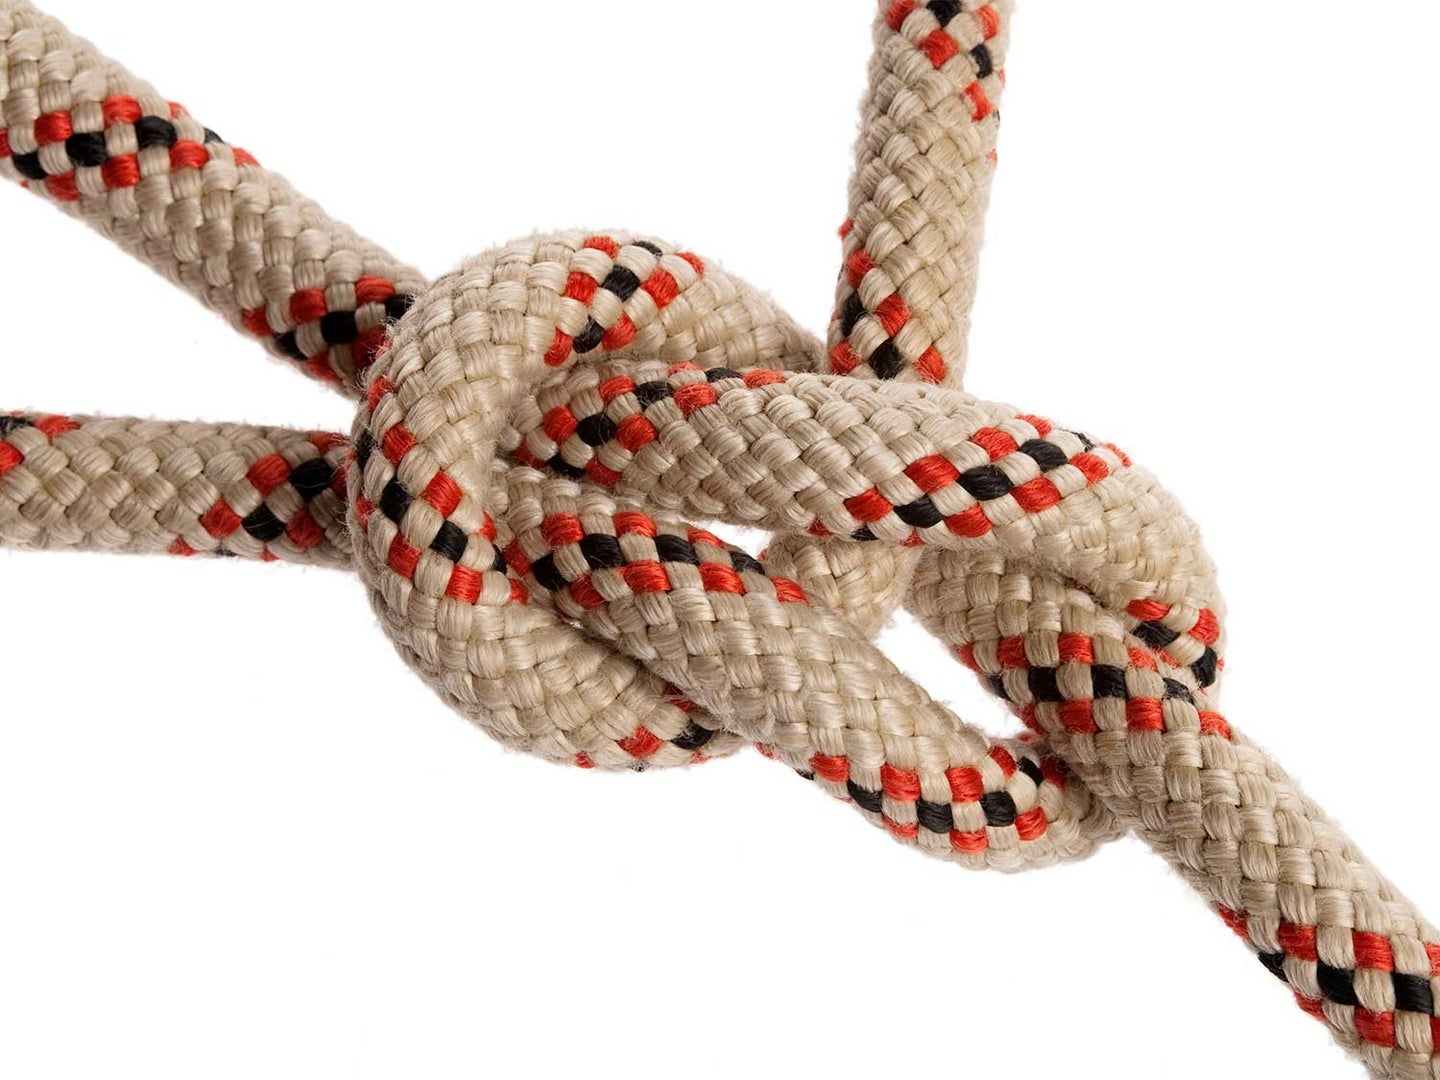 An up close image of a bowline knot.